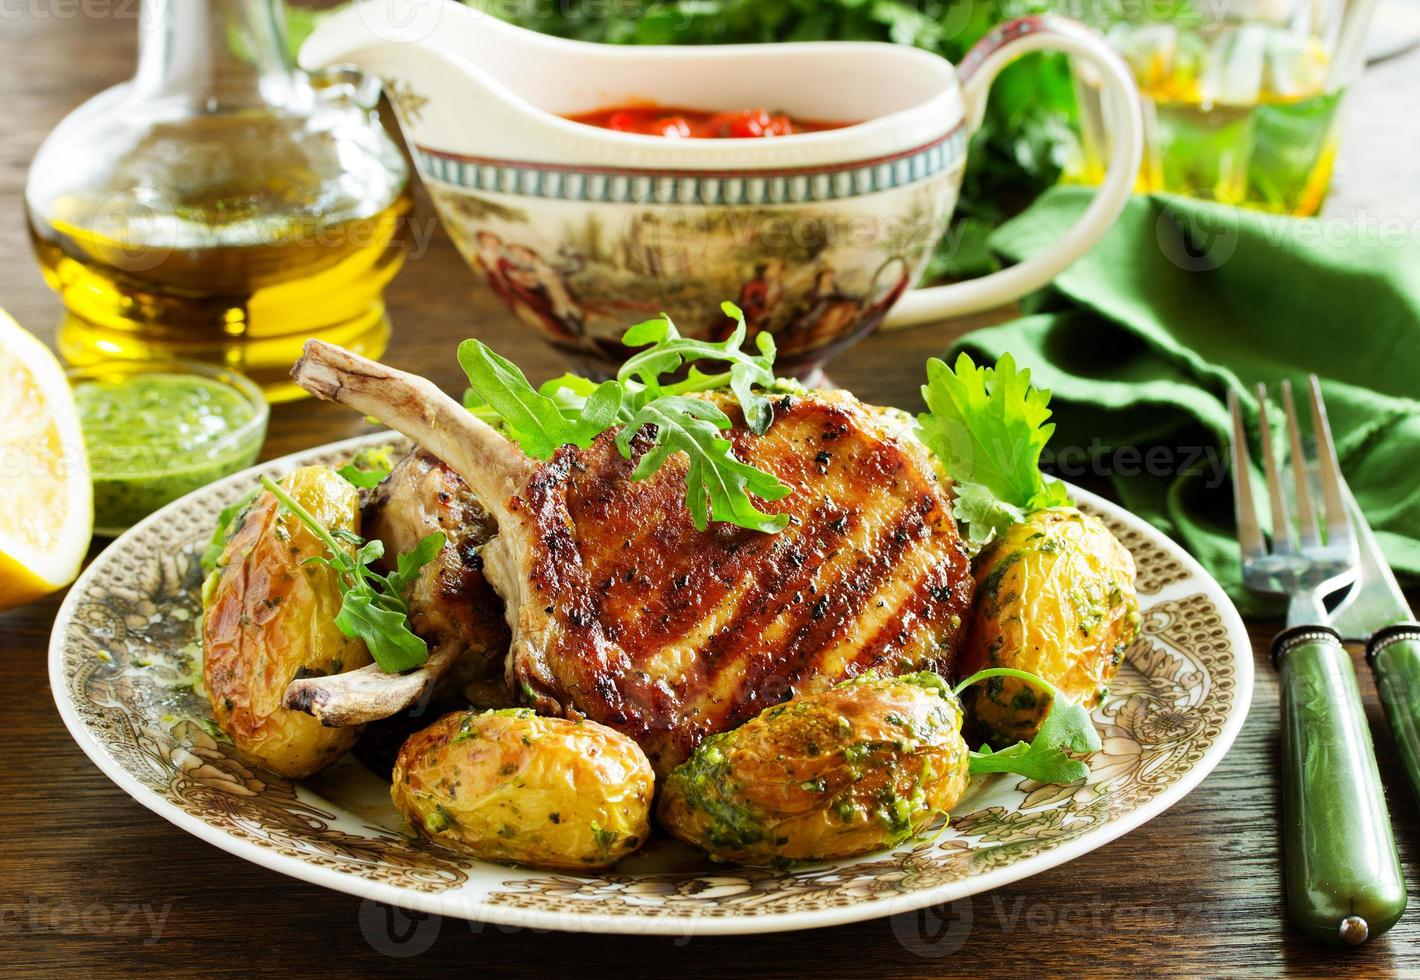 Grilled pork chop on the bone with spicy potatoes. photo